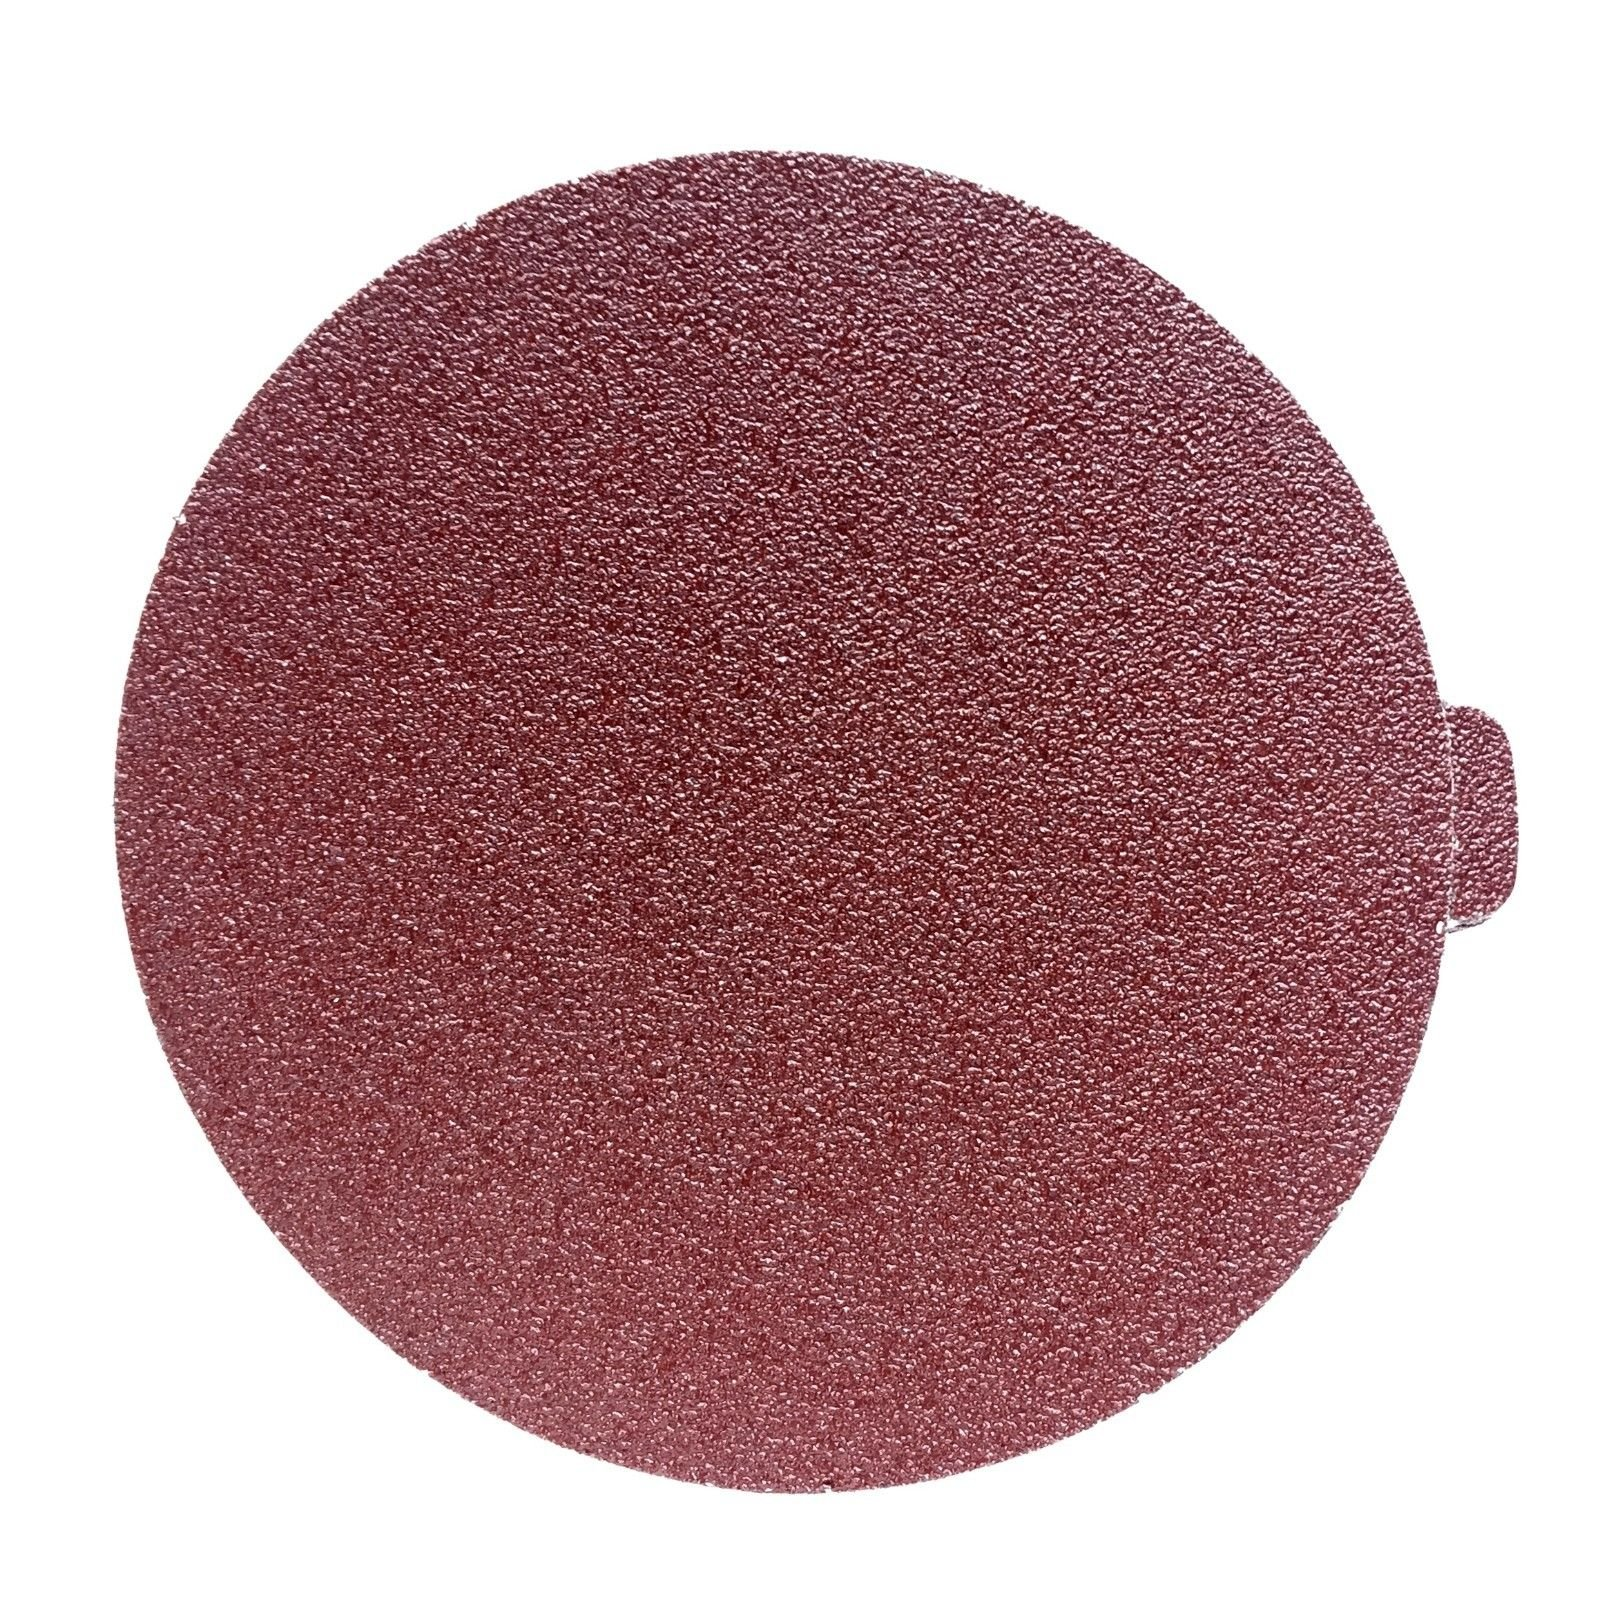 8 Inch Heavy Duty Adhesive Sticky Back Tabbed Sanding Discs (25 Pack, 80 Grit)